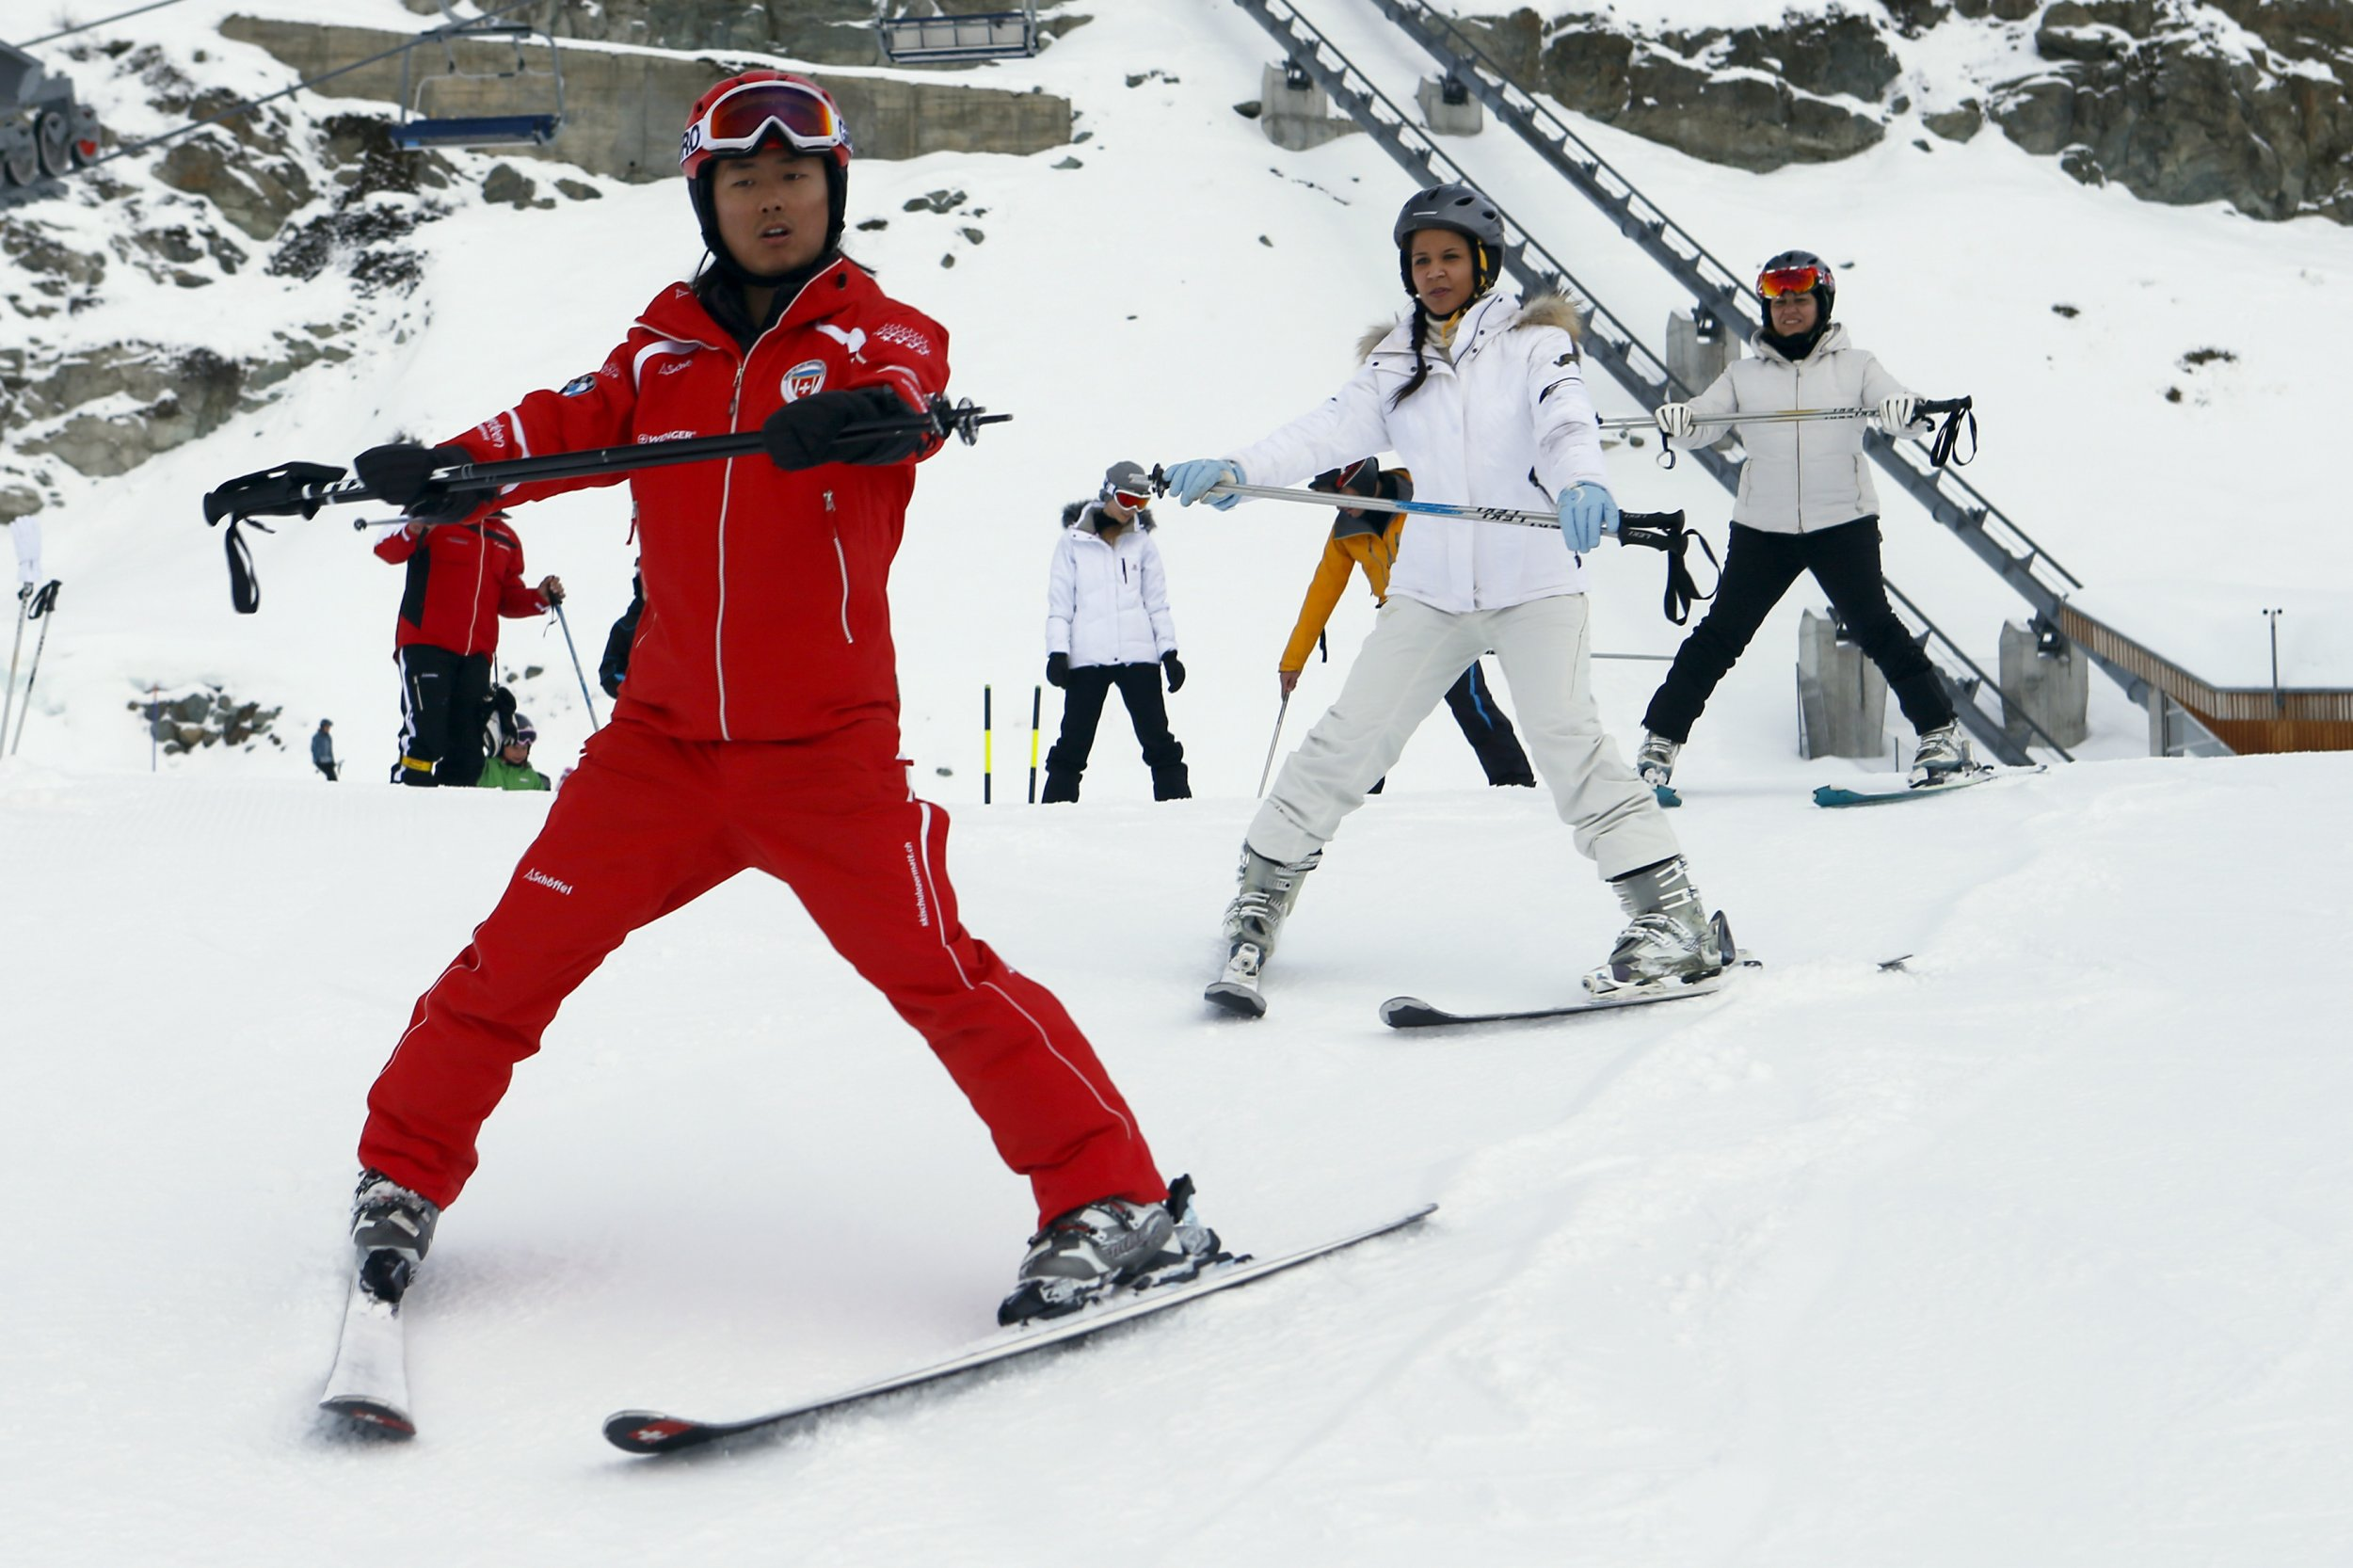 The SwissChinese Ski School for a New Set of Tourists